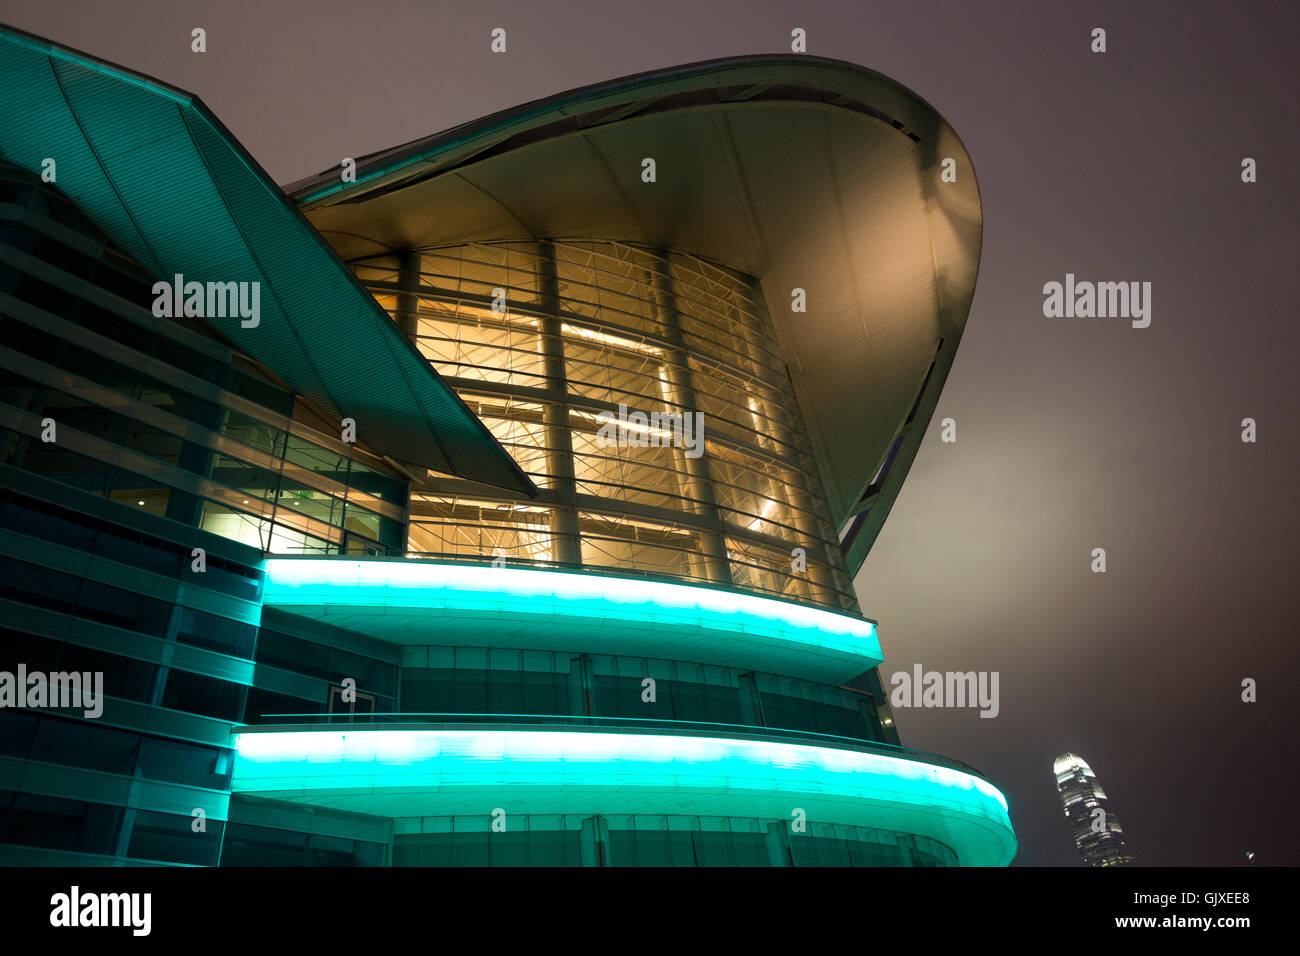 Hong Kong Convention and Exhibition Centre - Stock Image